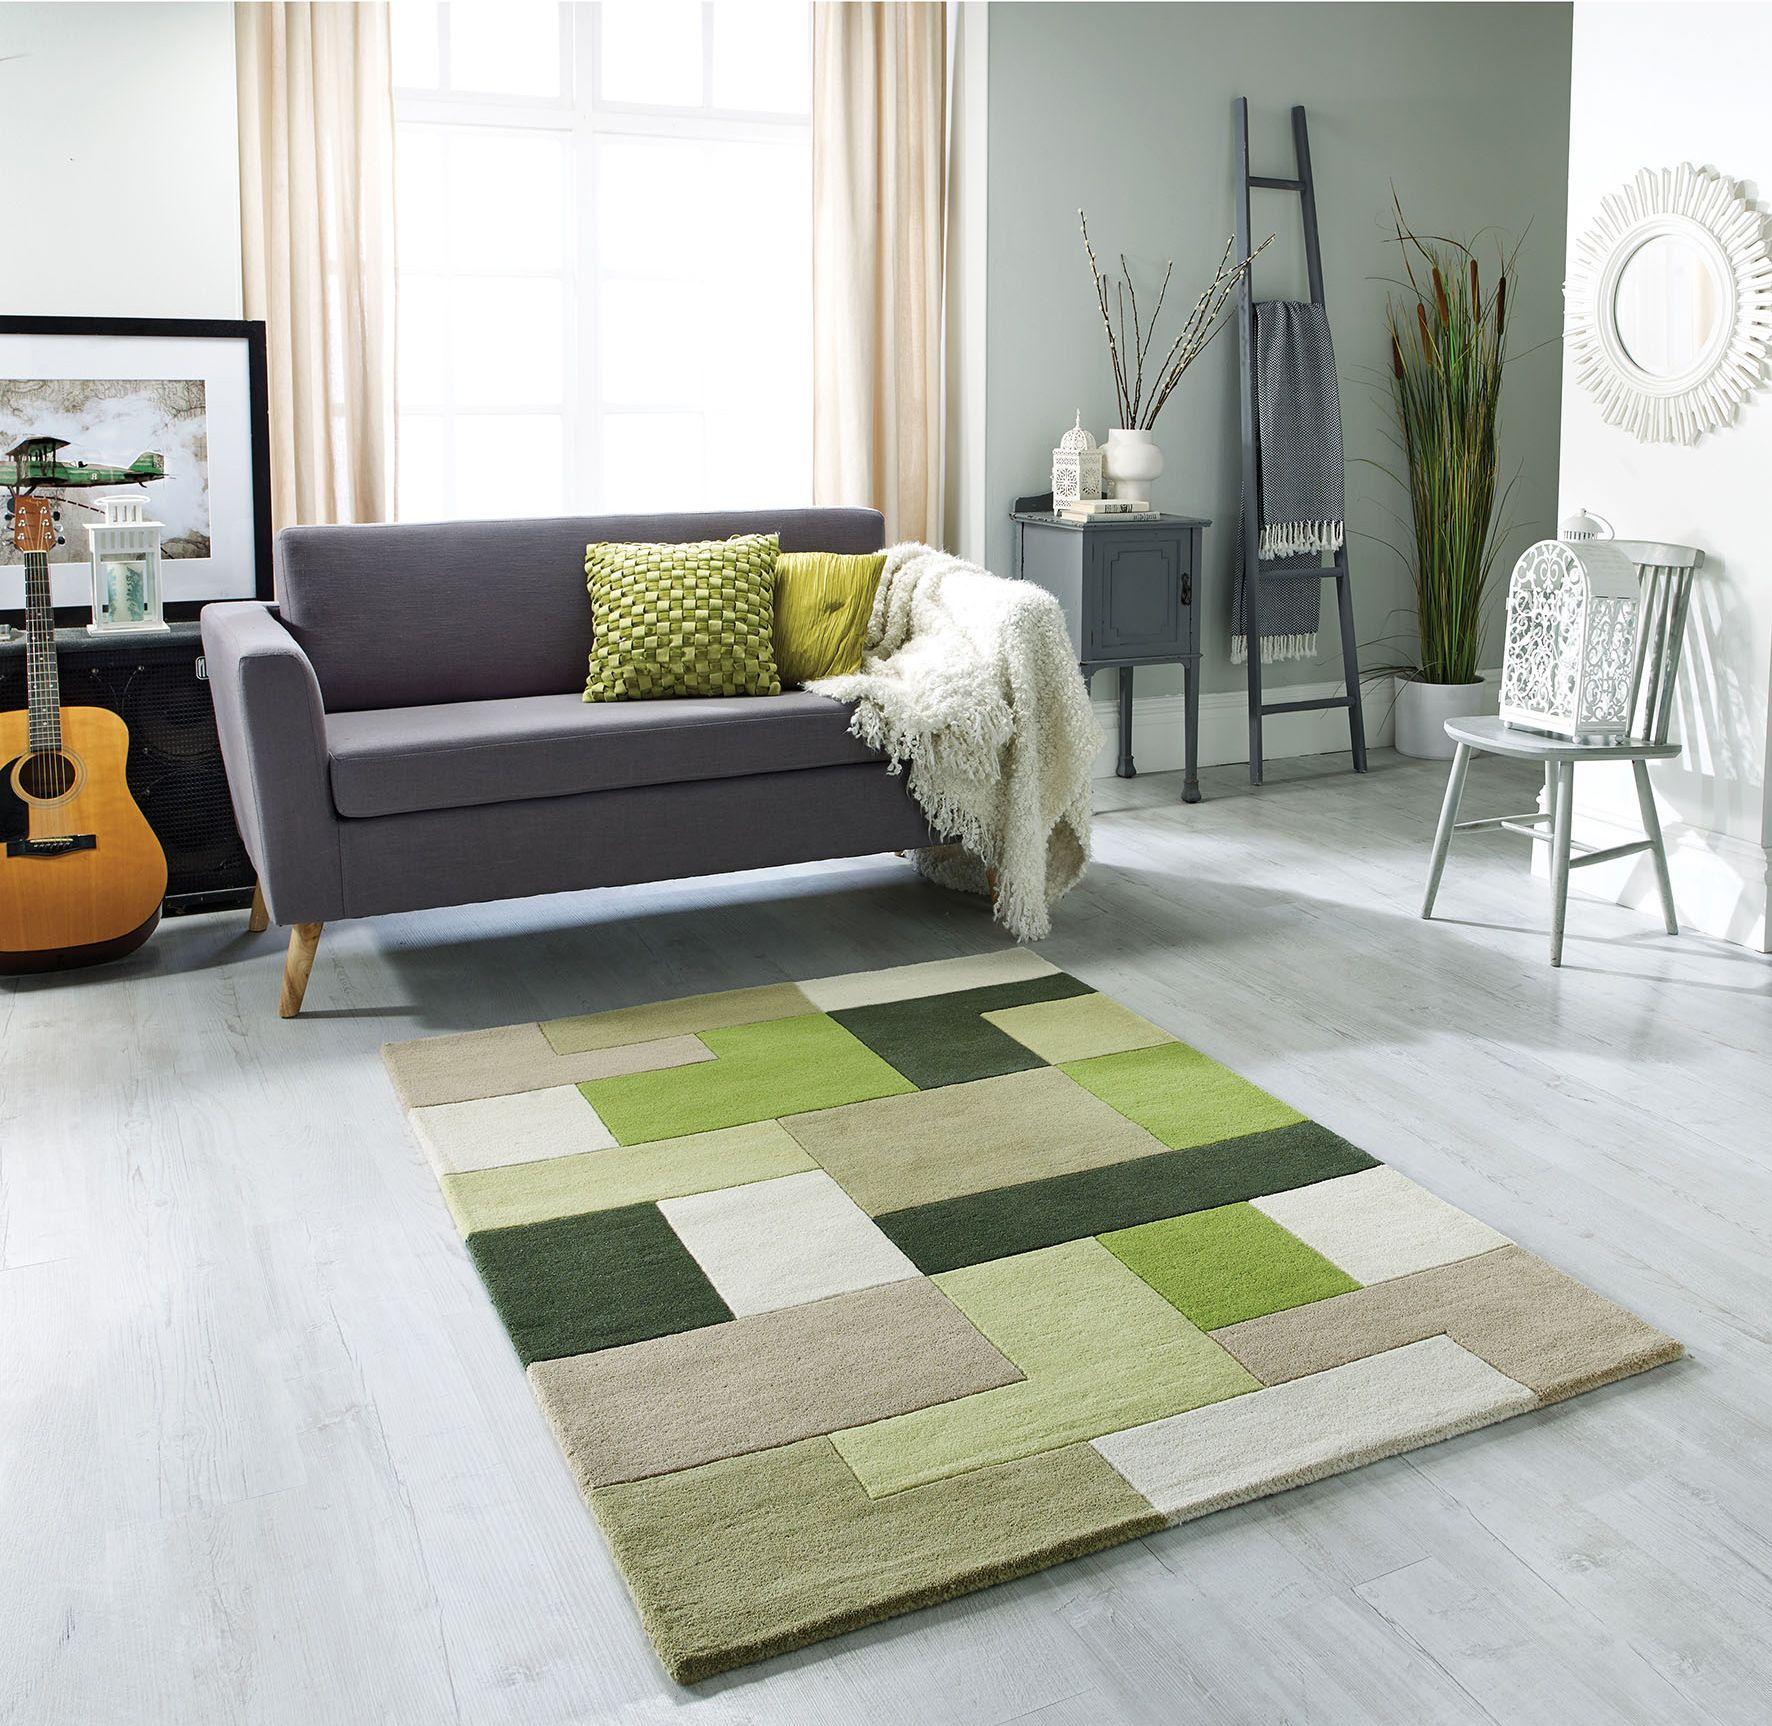 Lexus Green Rug With Images Green Rug Living Room Green Rug